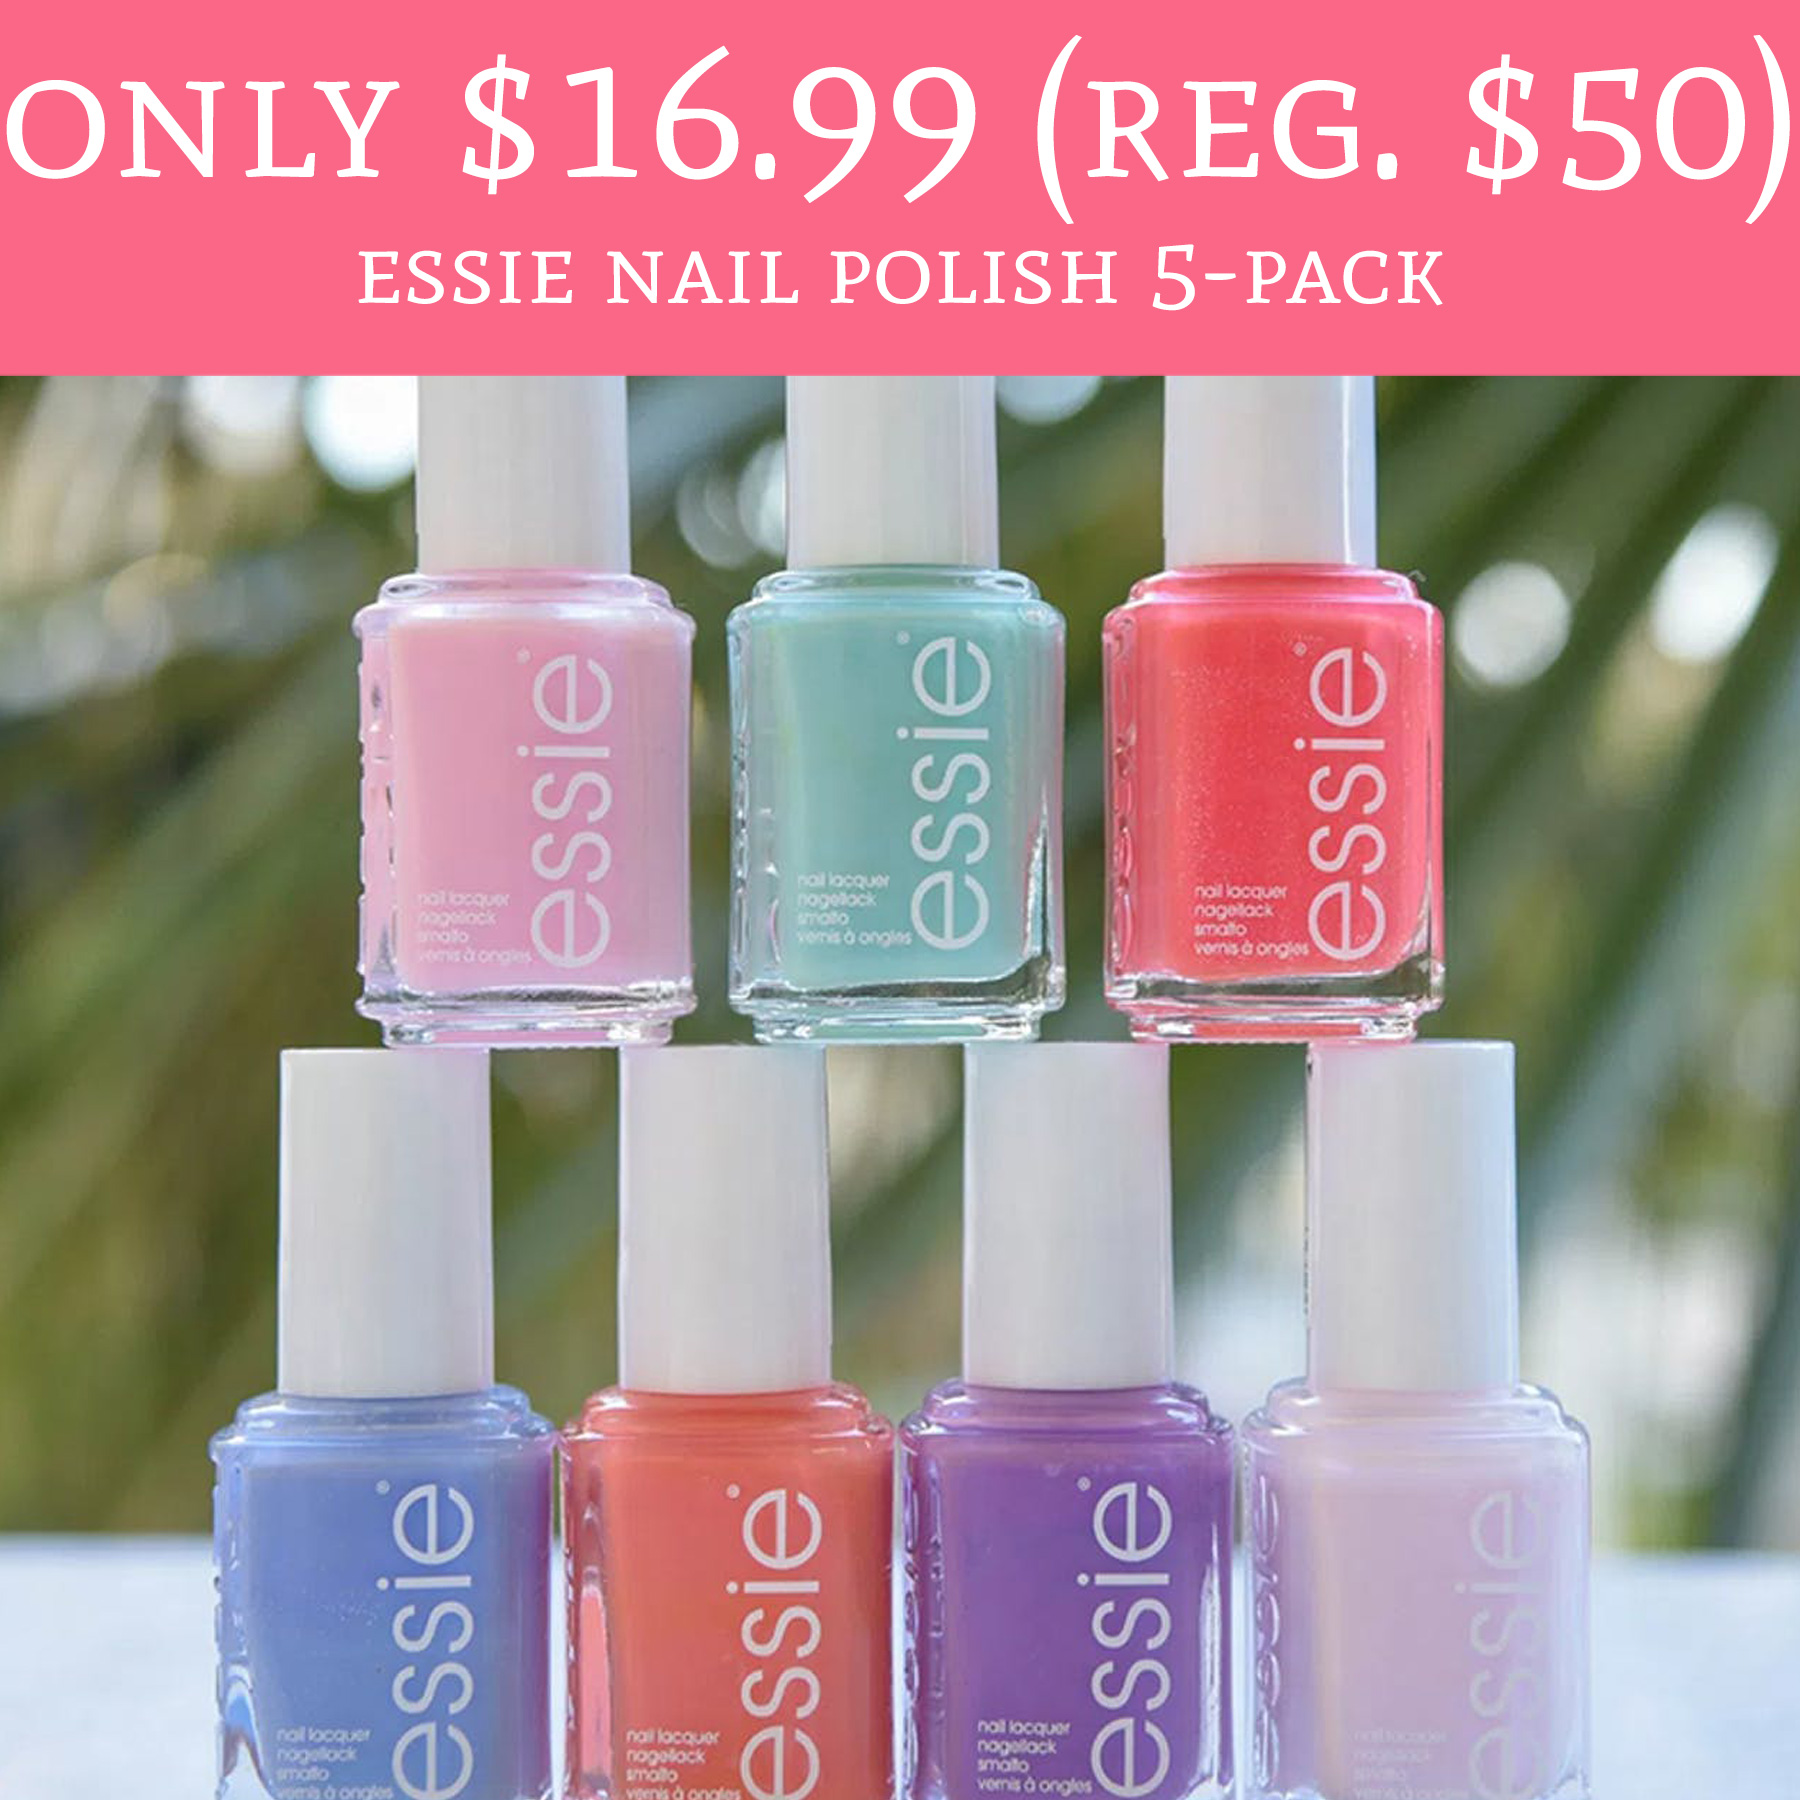 Only $16.99 (Regular $50) Essie Nail Polish 5-Pack + Free Shipping ...